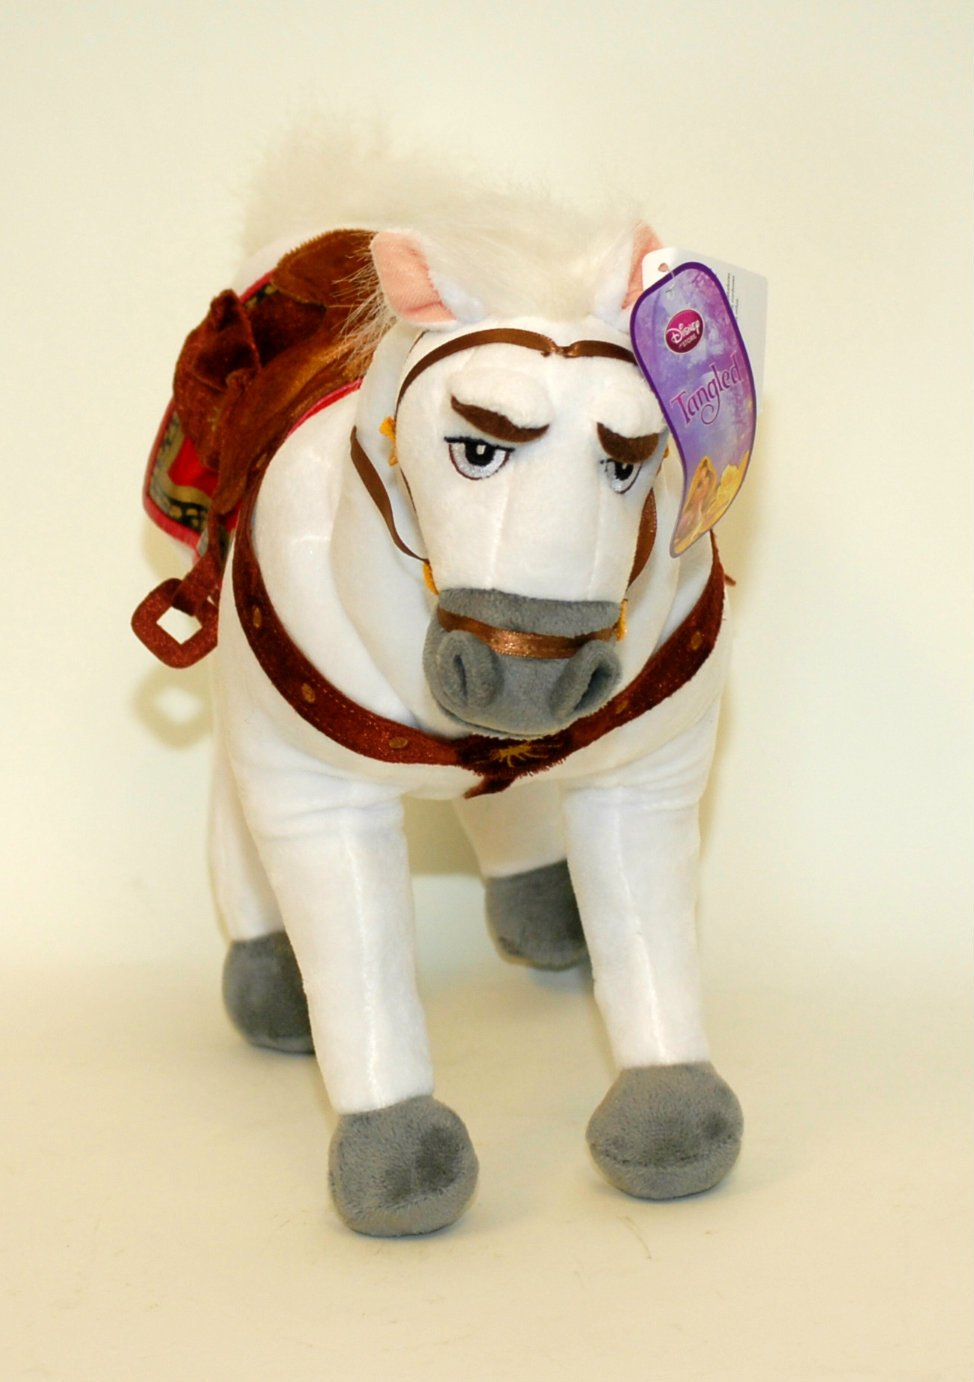 Amazon.com: Disney, Tangled Maximus Horse Plush soft doll Toy - 16: Toys & Games